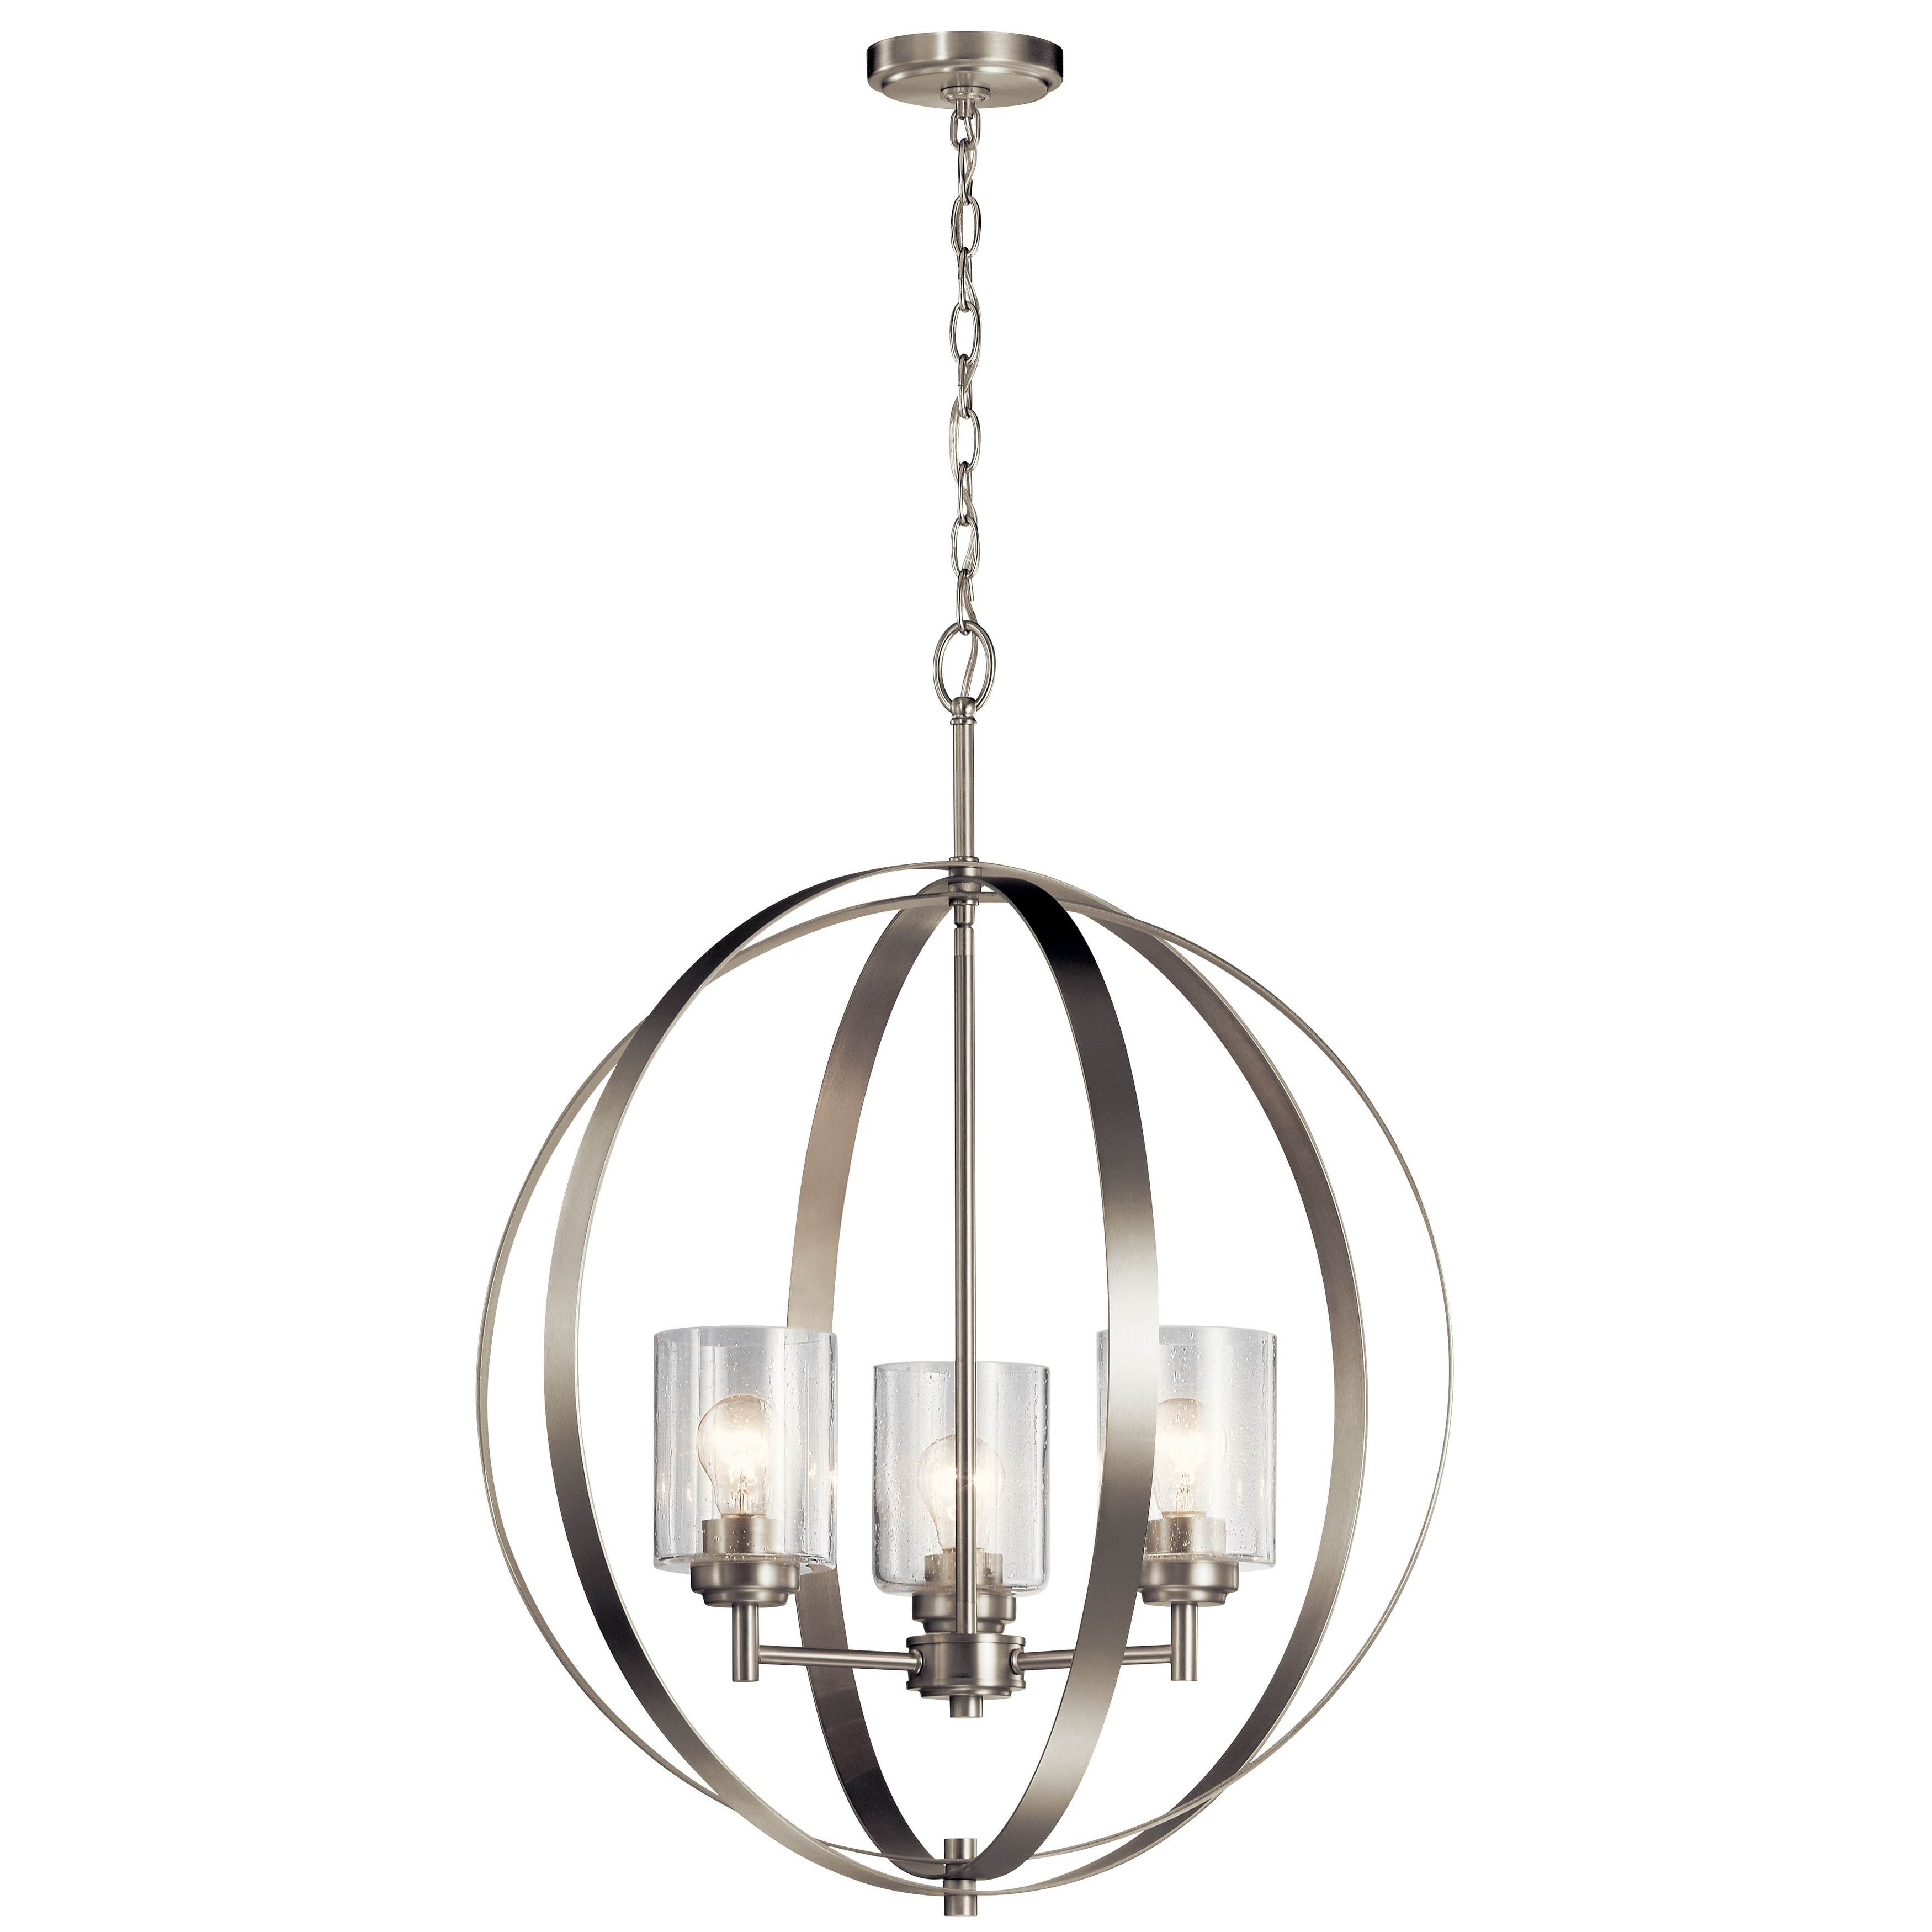 The Gray Barn Saffron 8-Light Chandelier In 2019 | Products inside Morganti 4-Light Chandeliers (Image 28 of 30)